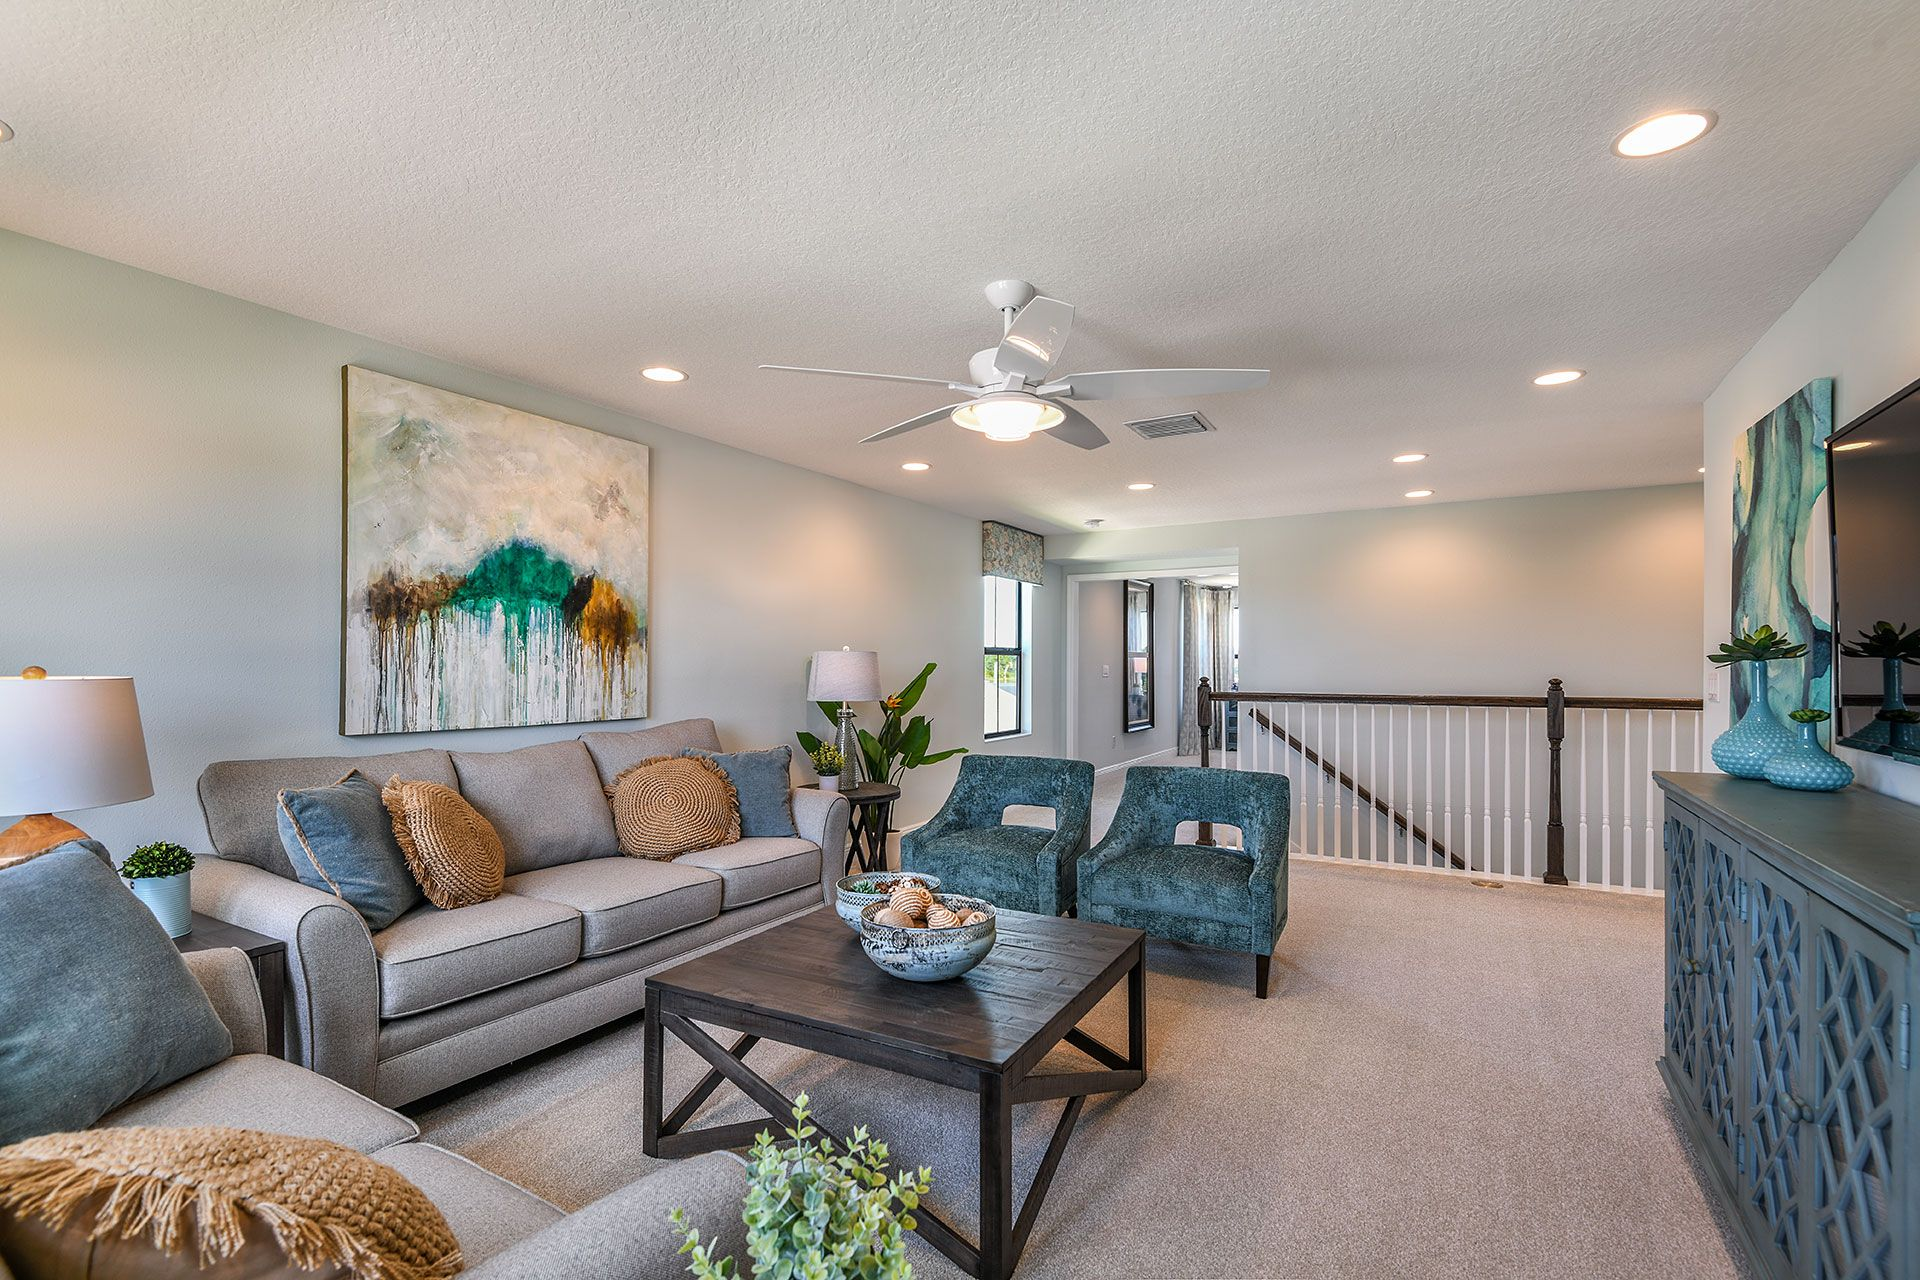 Living Area featured in the Pelican By Homes by WestBay in Tampa-St. Petersburg, FL